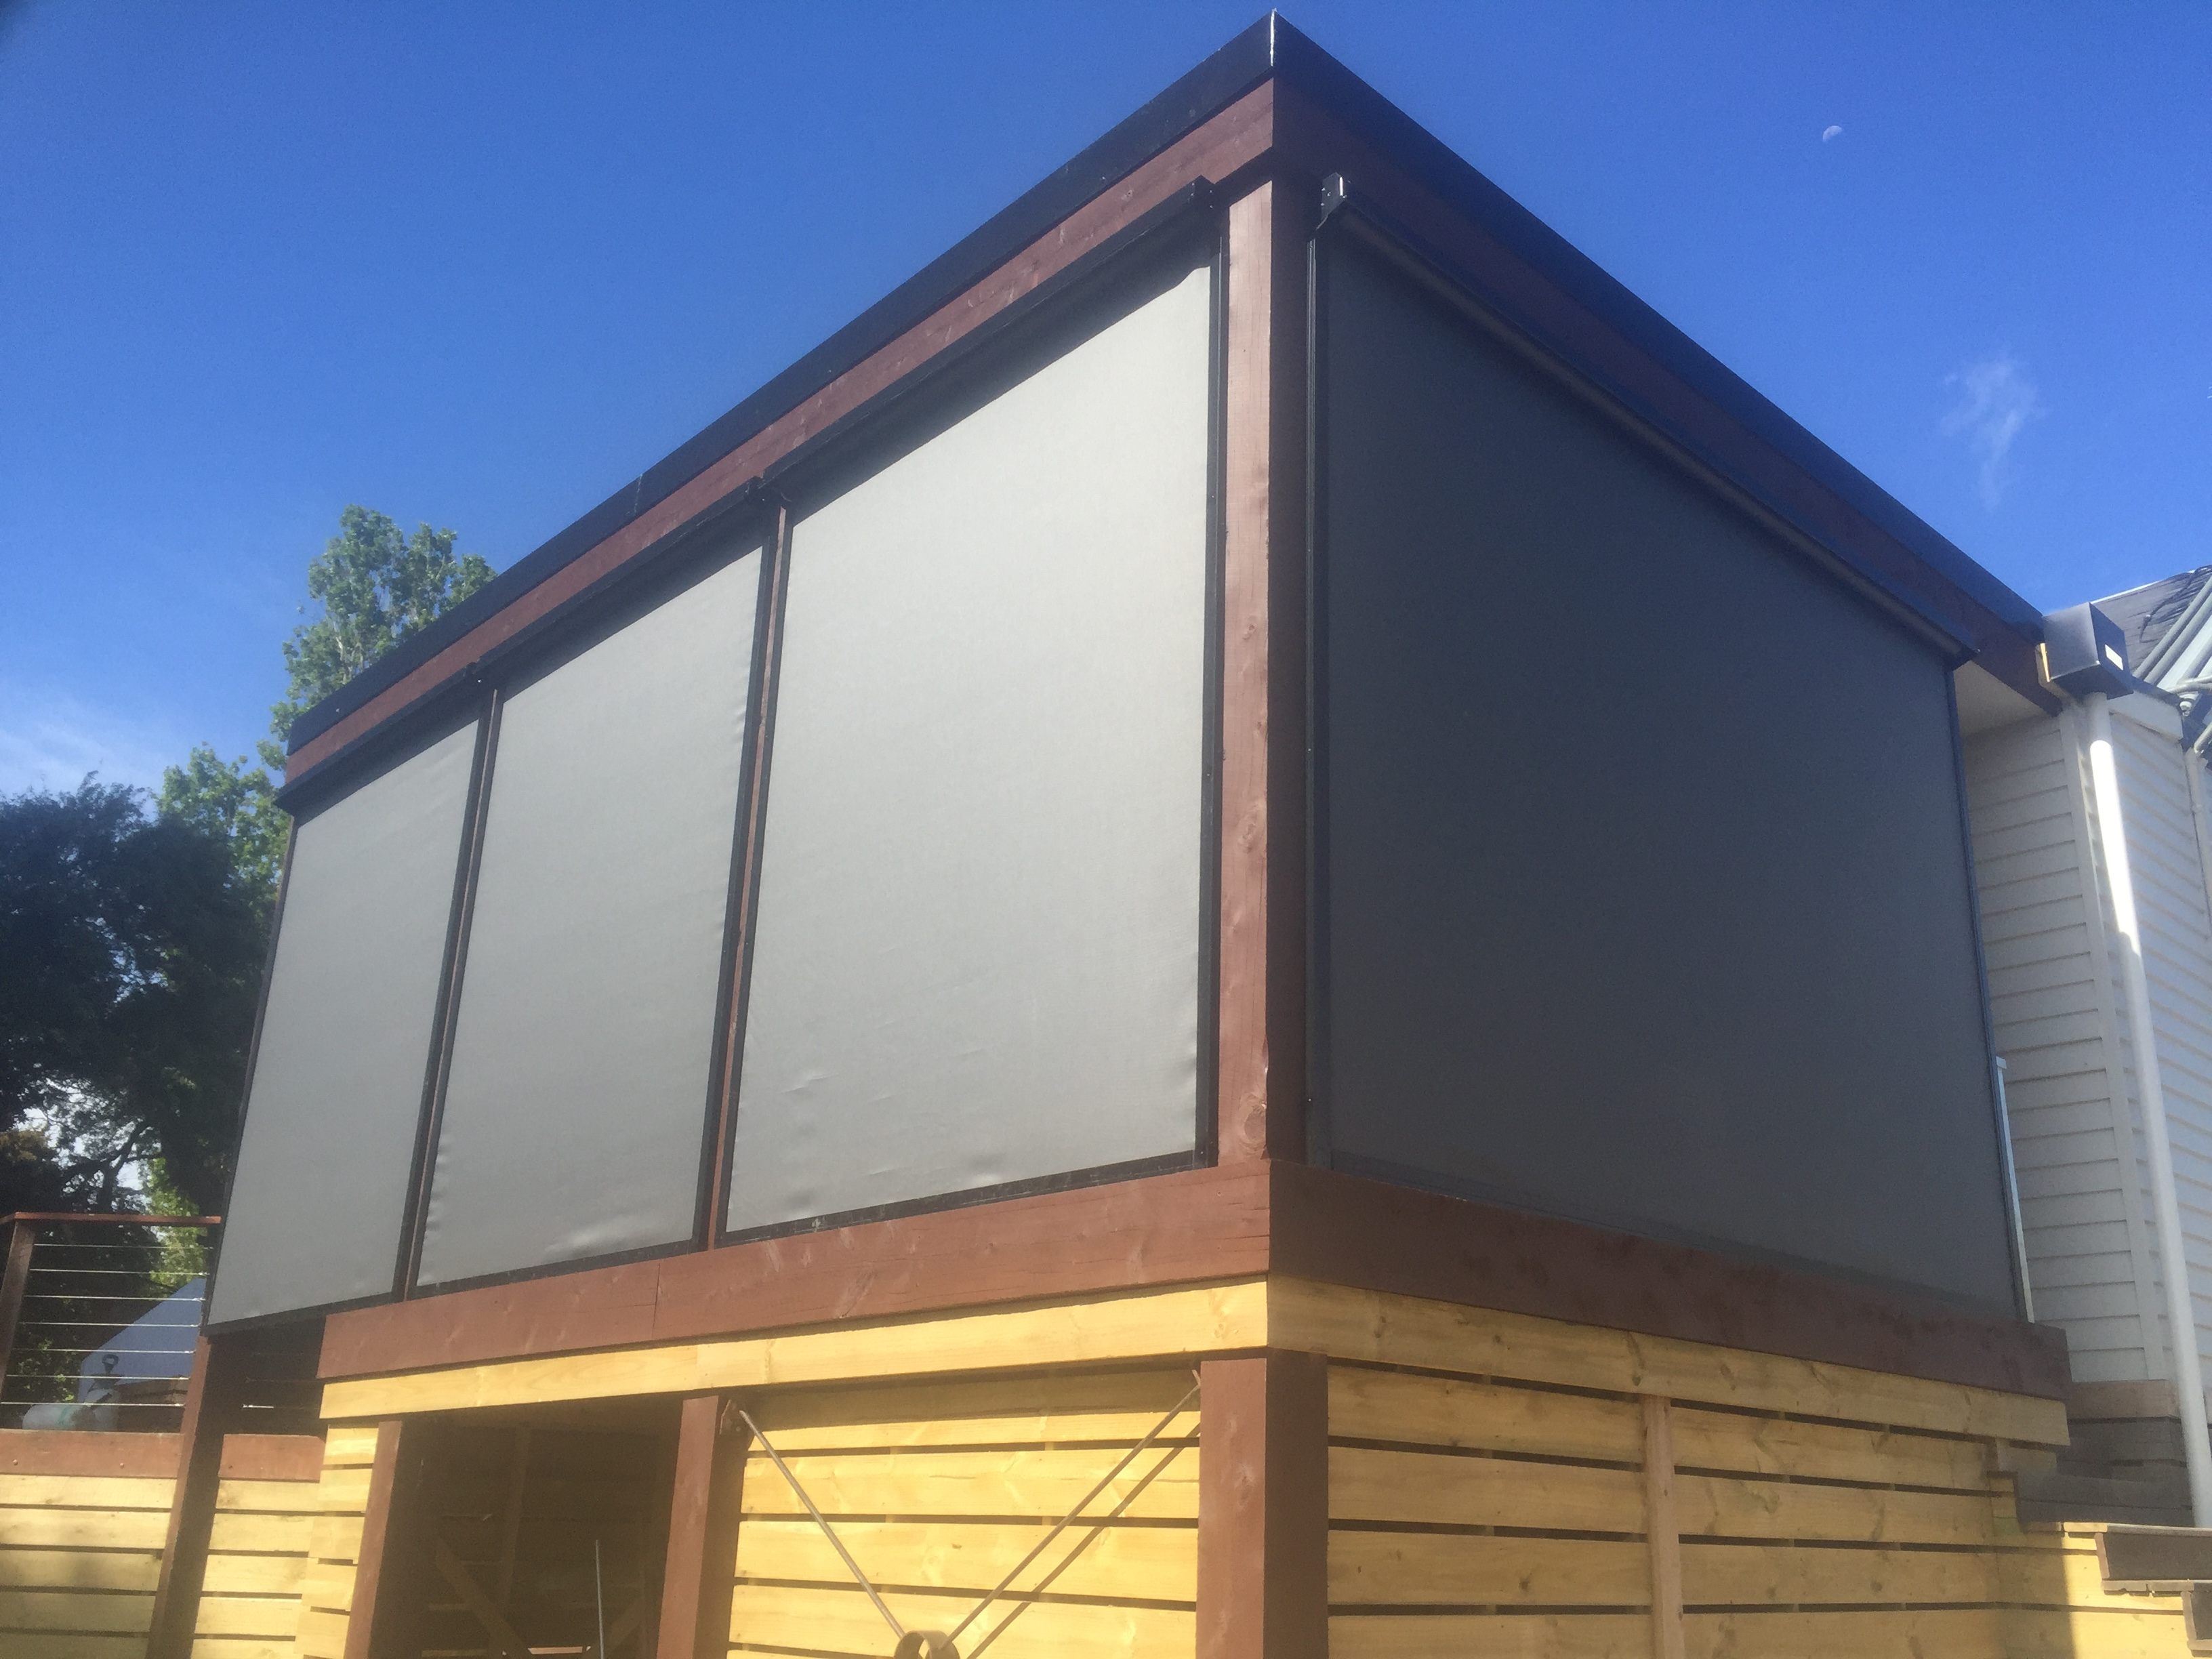 Motorised Zipscreen outdoor blinds